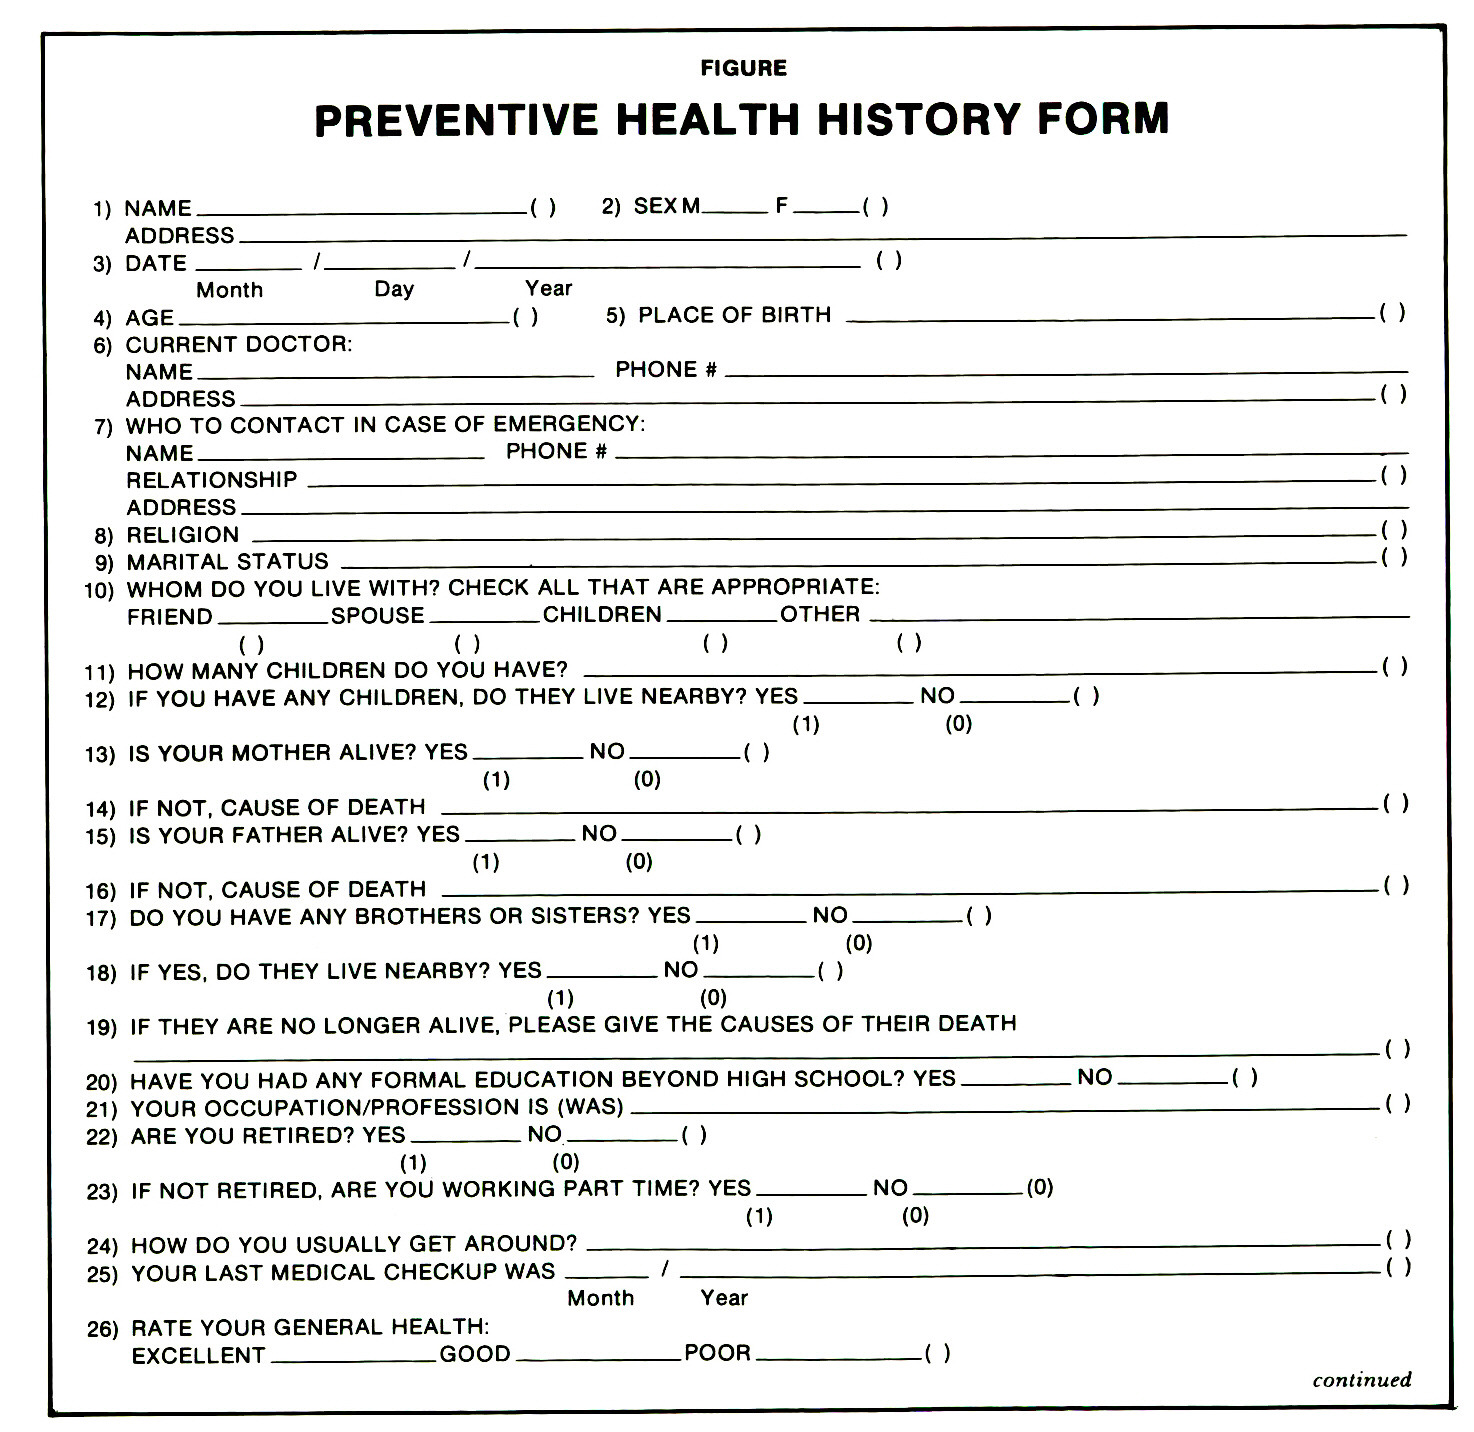 health questionnaire form template - the preventive health history form a questionnaire for